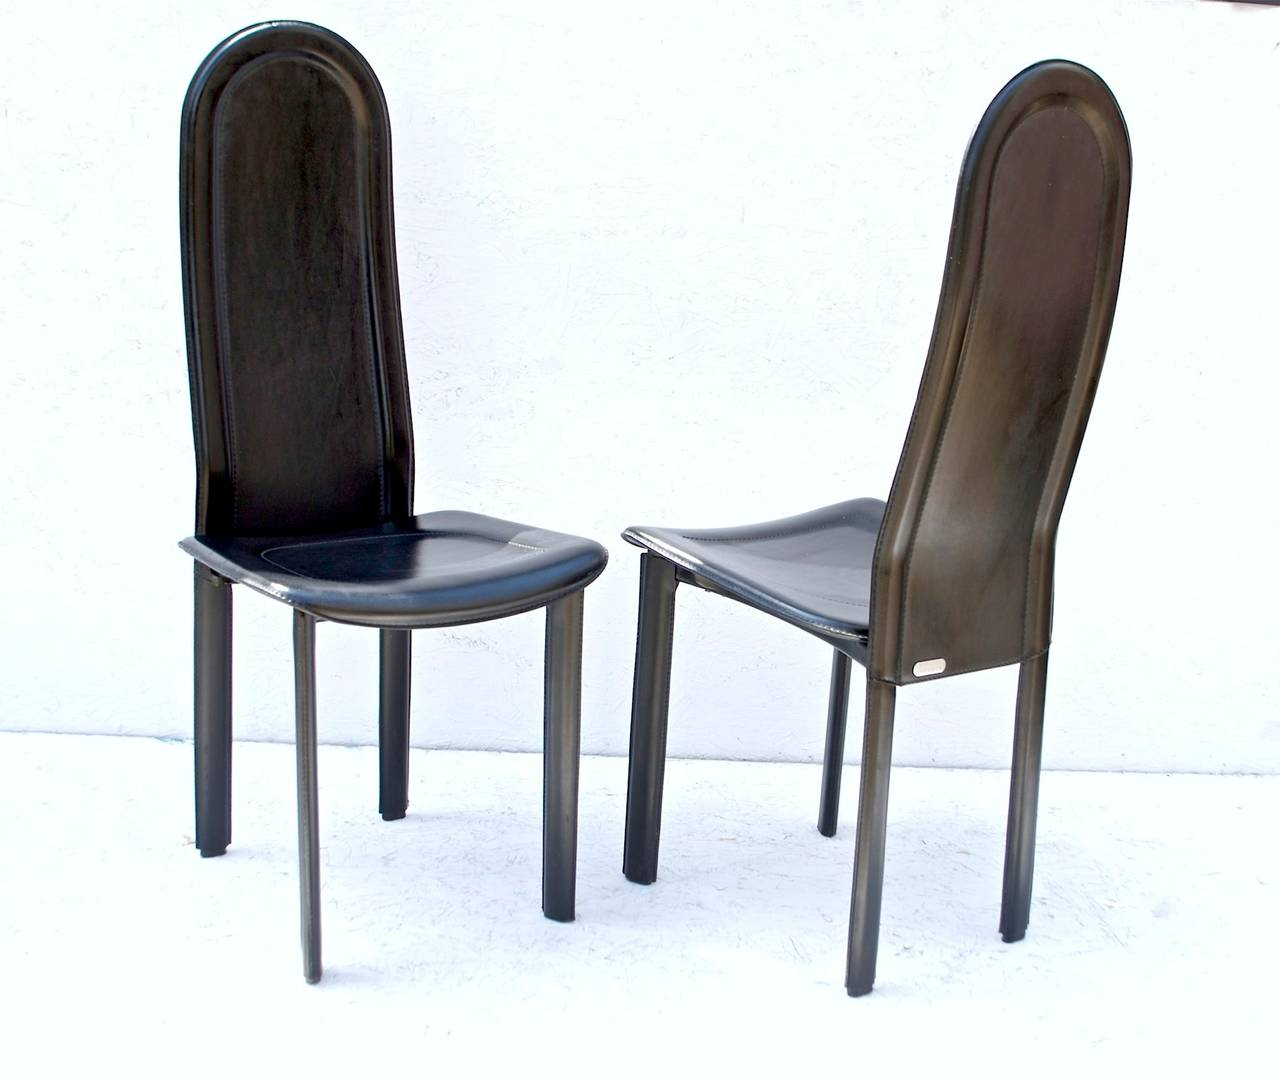 Black leather dining chairs by artedi u k for sale at 1stdibs for Black leather dining chairs